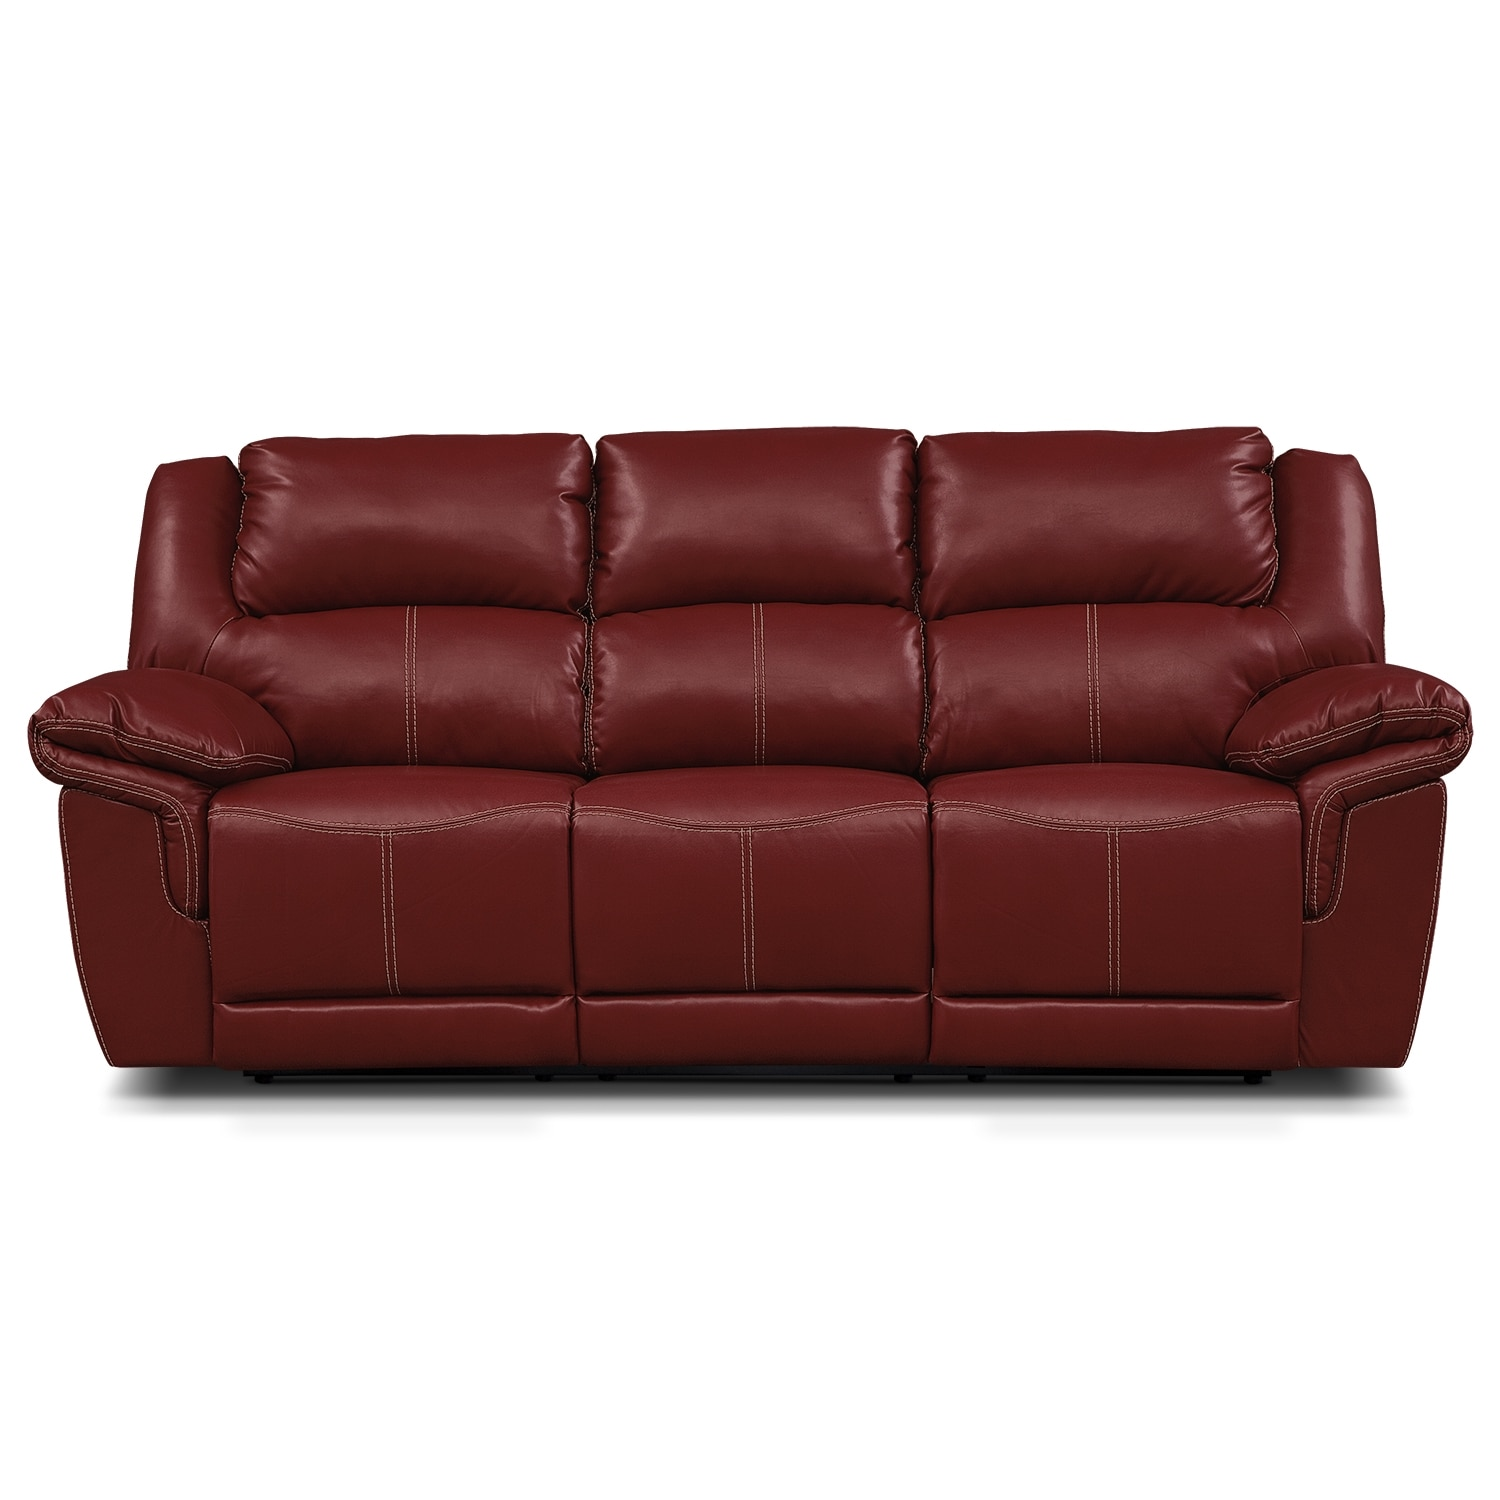 Dual Recliner Sofa Furnishings For Every Room And Store Furniture